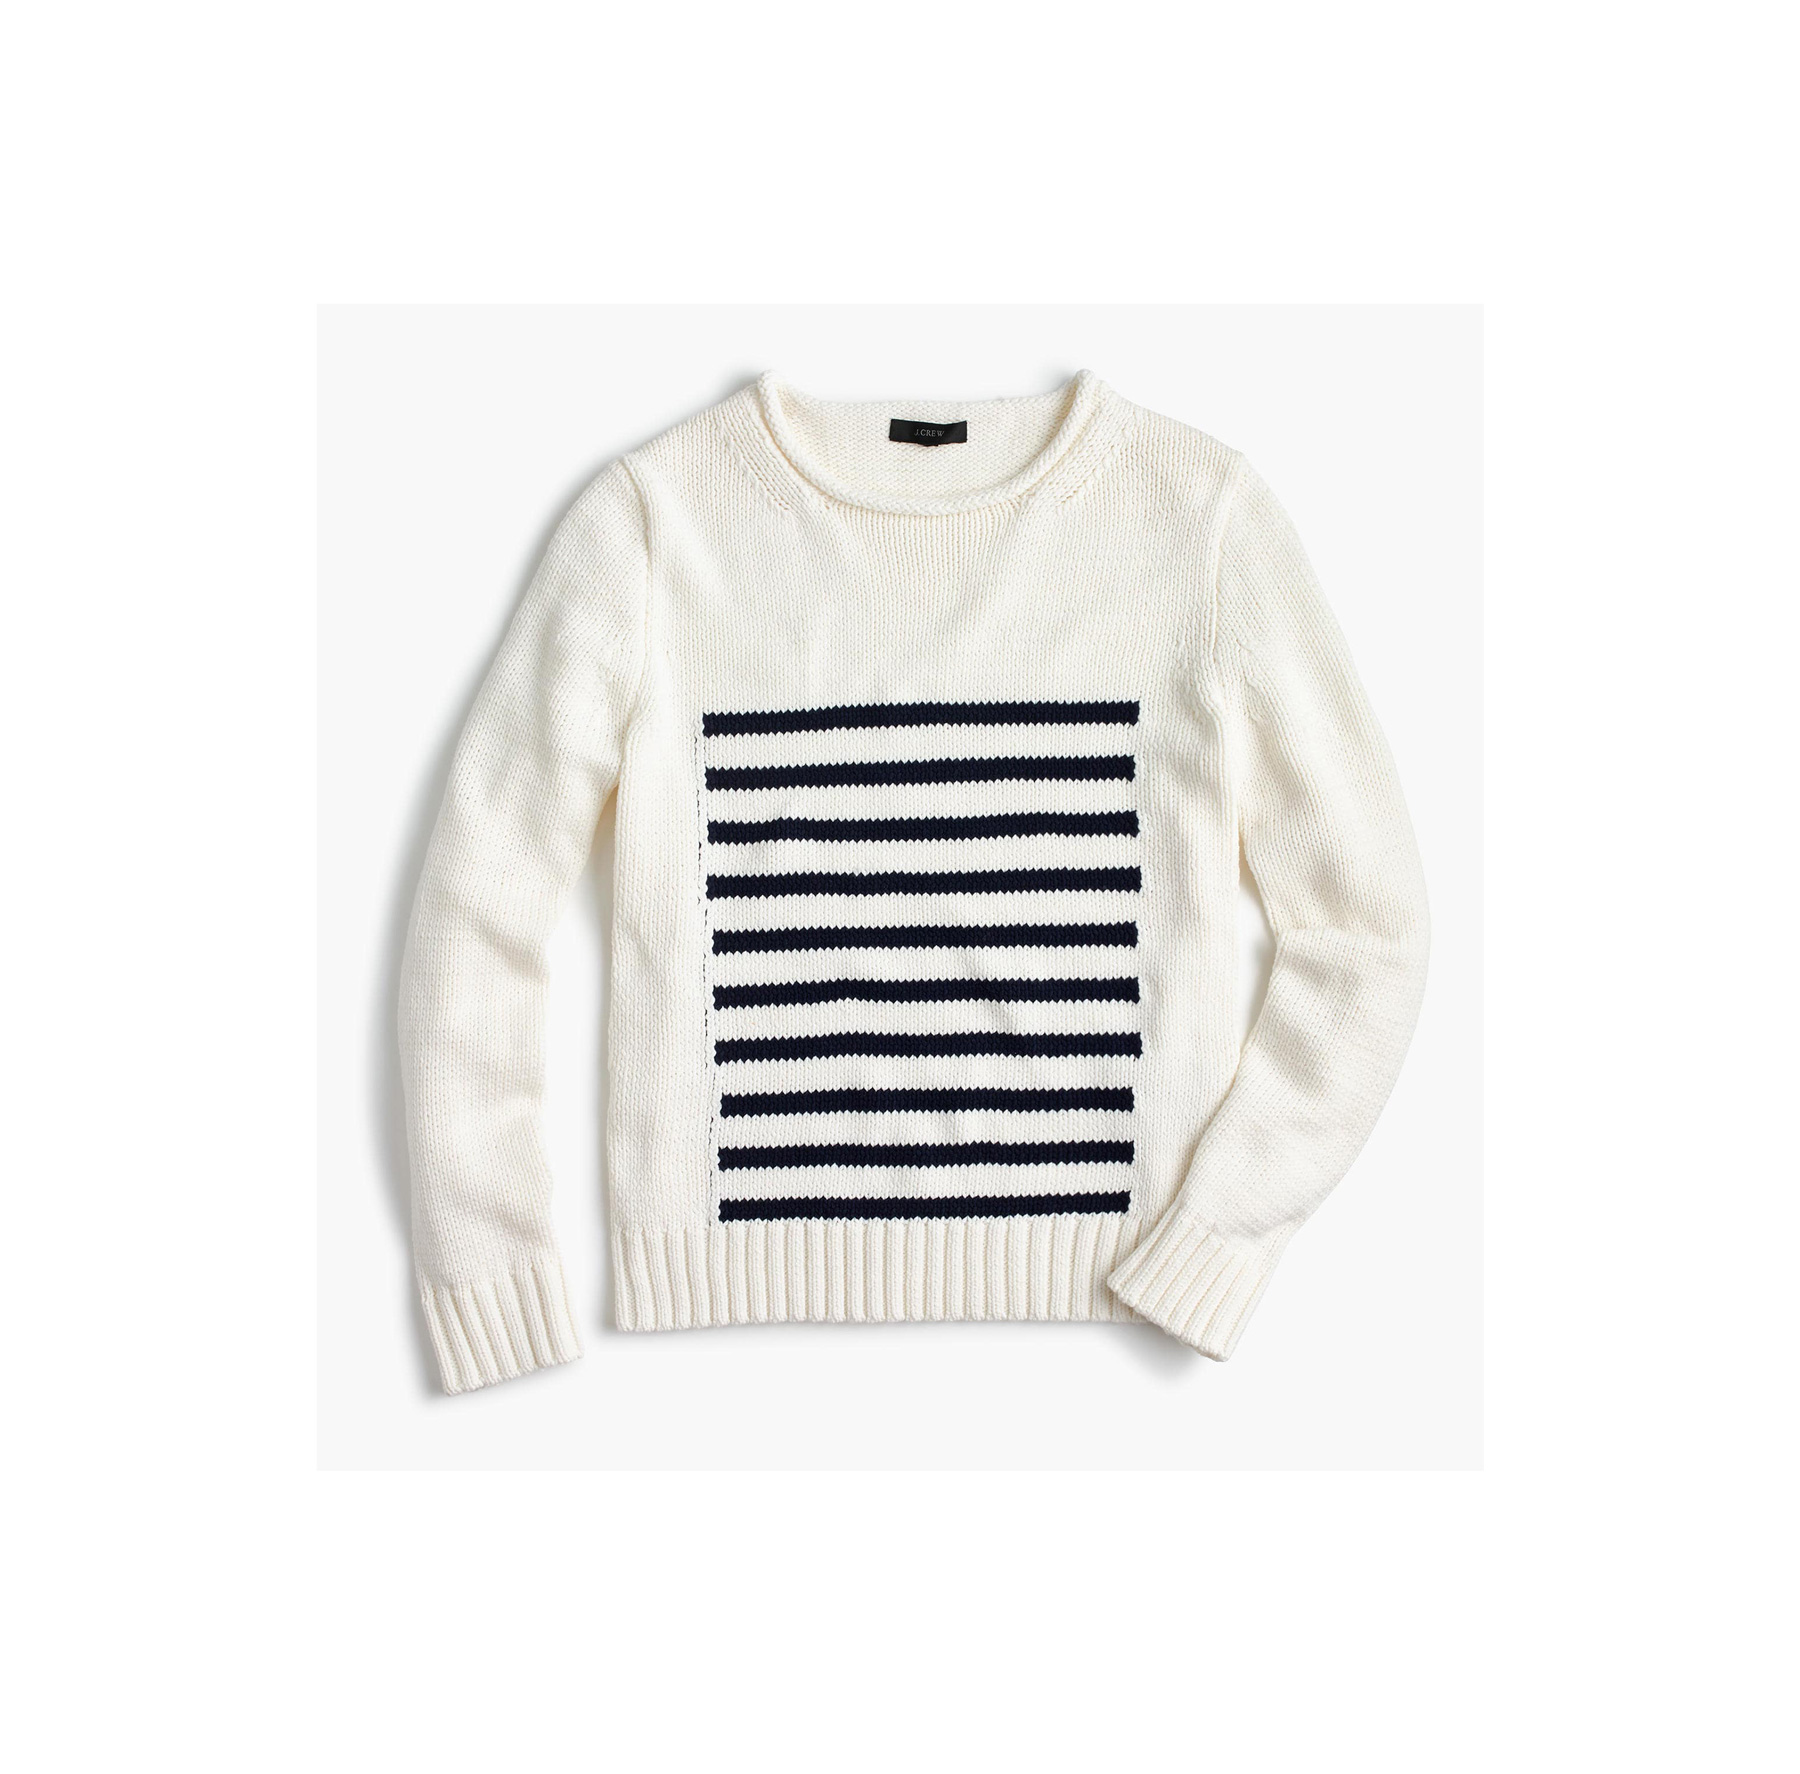 The 1988 Striped Rollneck Sweater